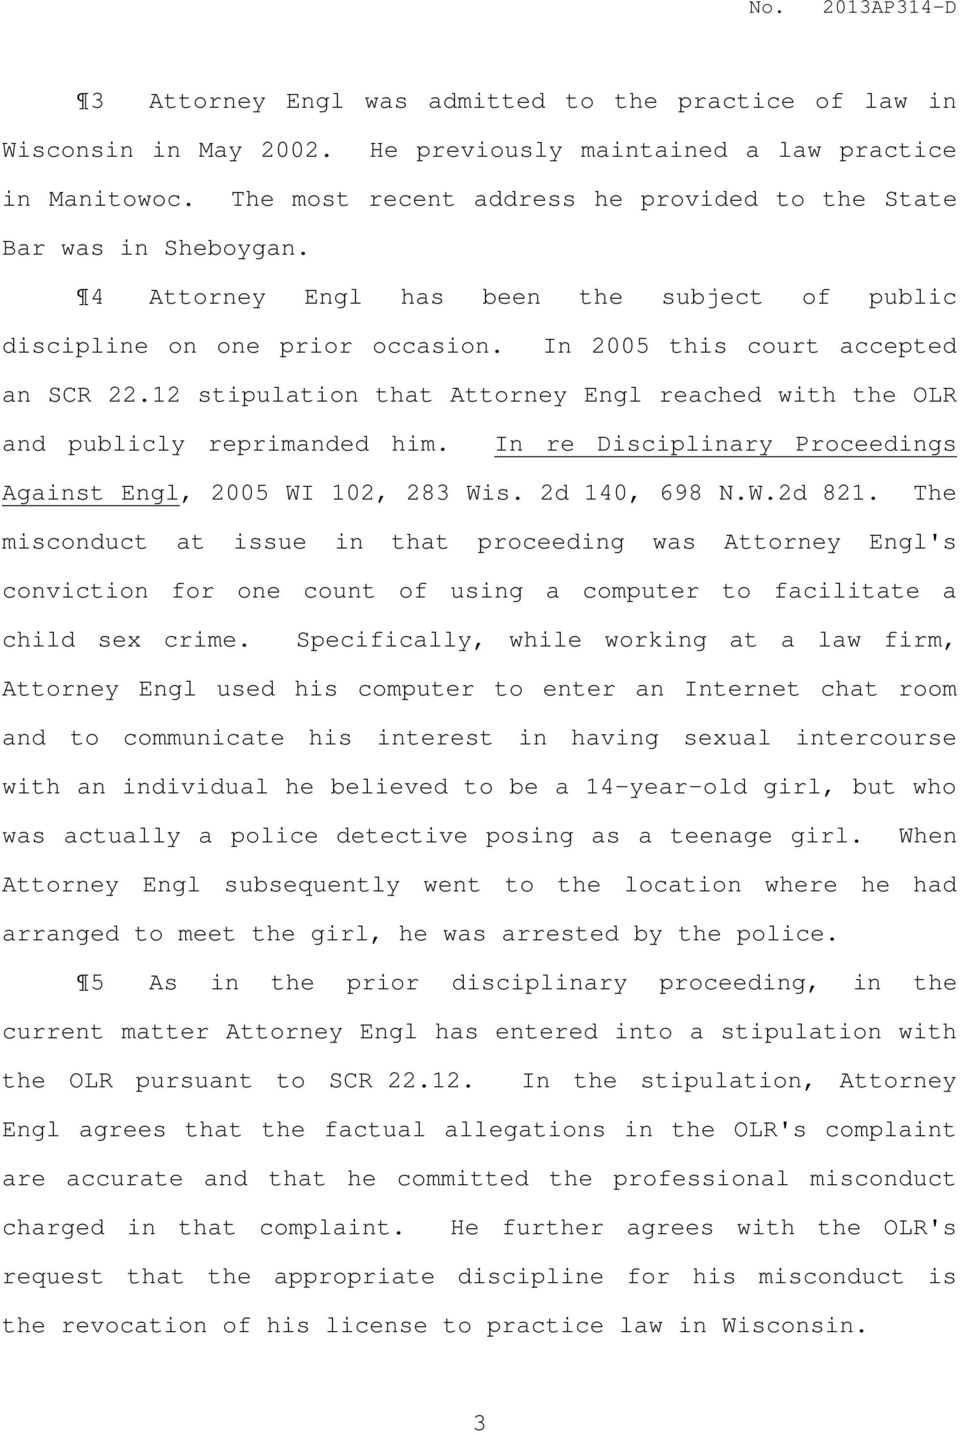 12 stipulation that Attorney Engl reached with the OLR and publicly reprimanded him. In re Disciplinary Proceedings Against Engl, 2005 WI 102, 283 Wis. 2d 140, 698 N.W.2d 821.